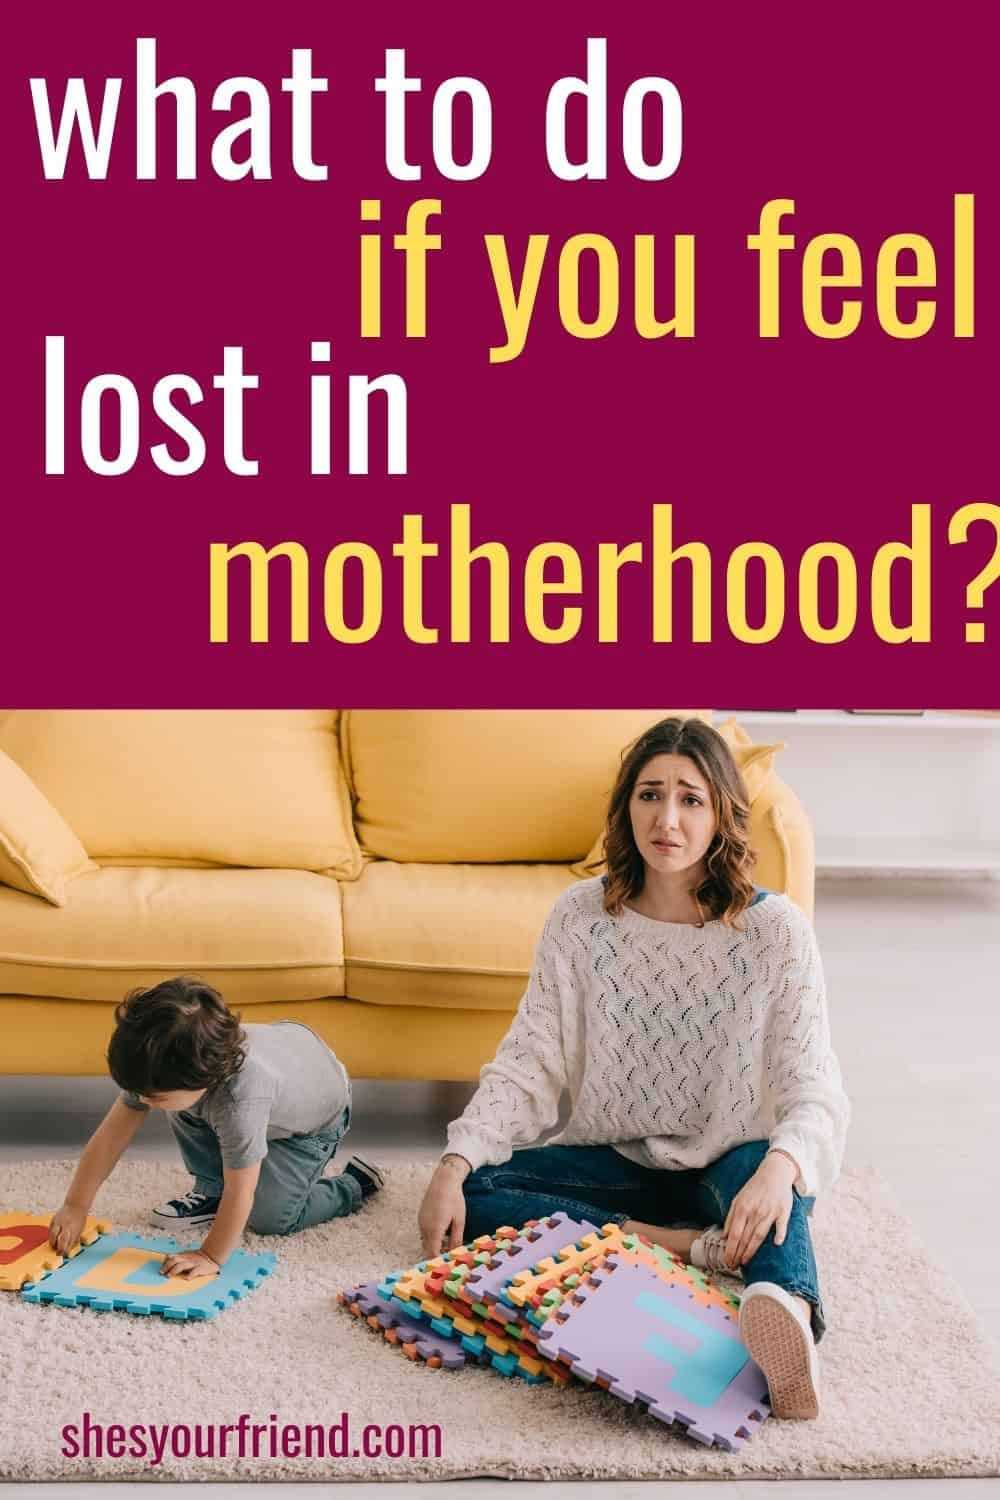 a mom sitting by her son looking frustrated with text overlay that reads what to do if you feel lost in motherhood